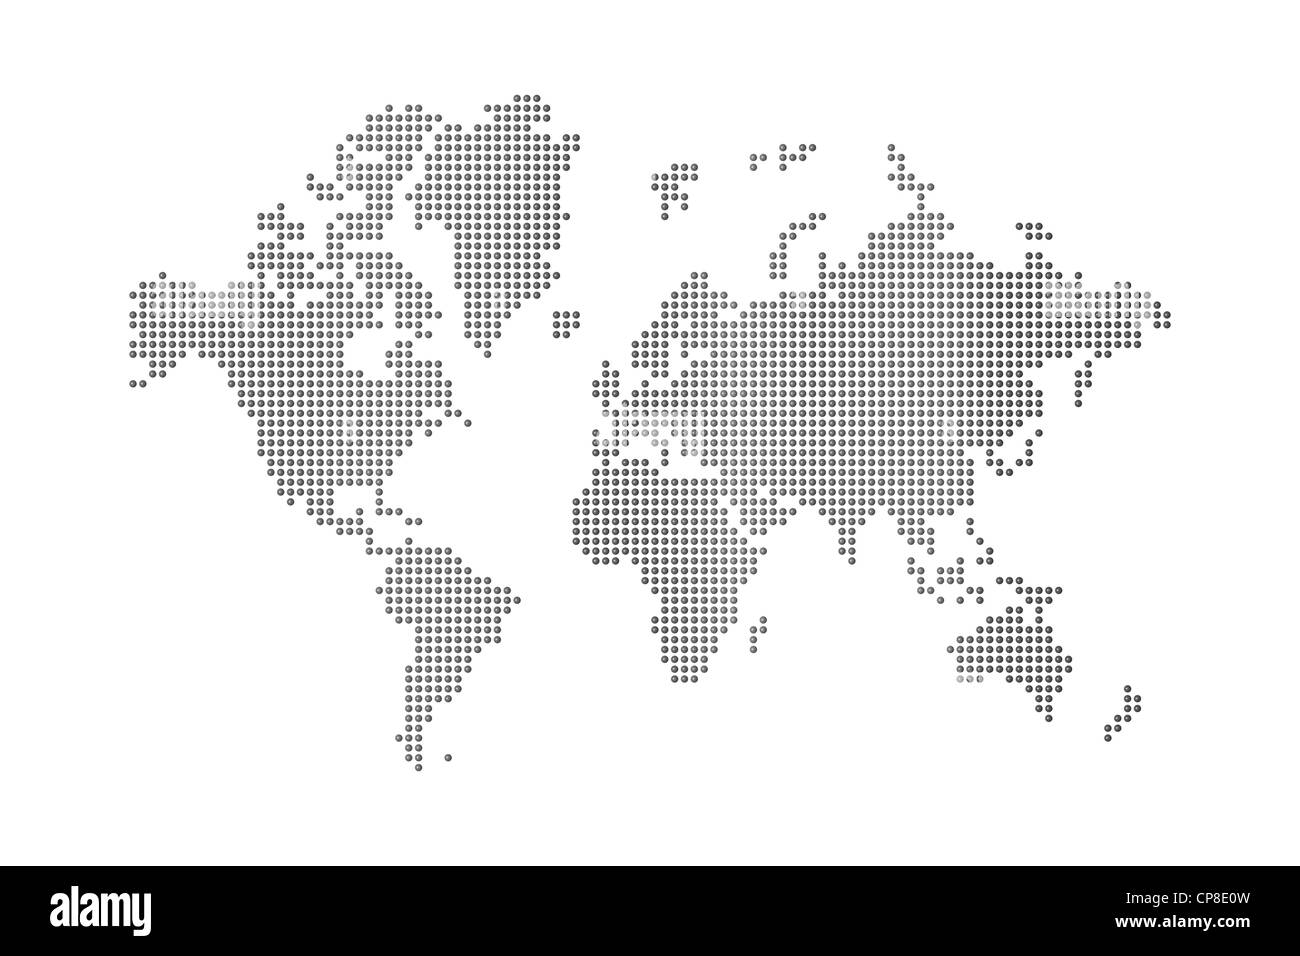 Dots world map on white background stock photo 48129785 alamy dots world map on white background gumiabroncs Gallery